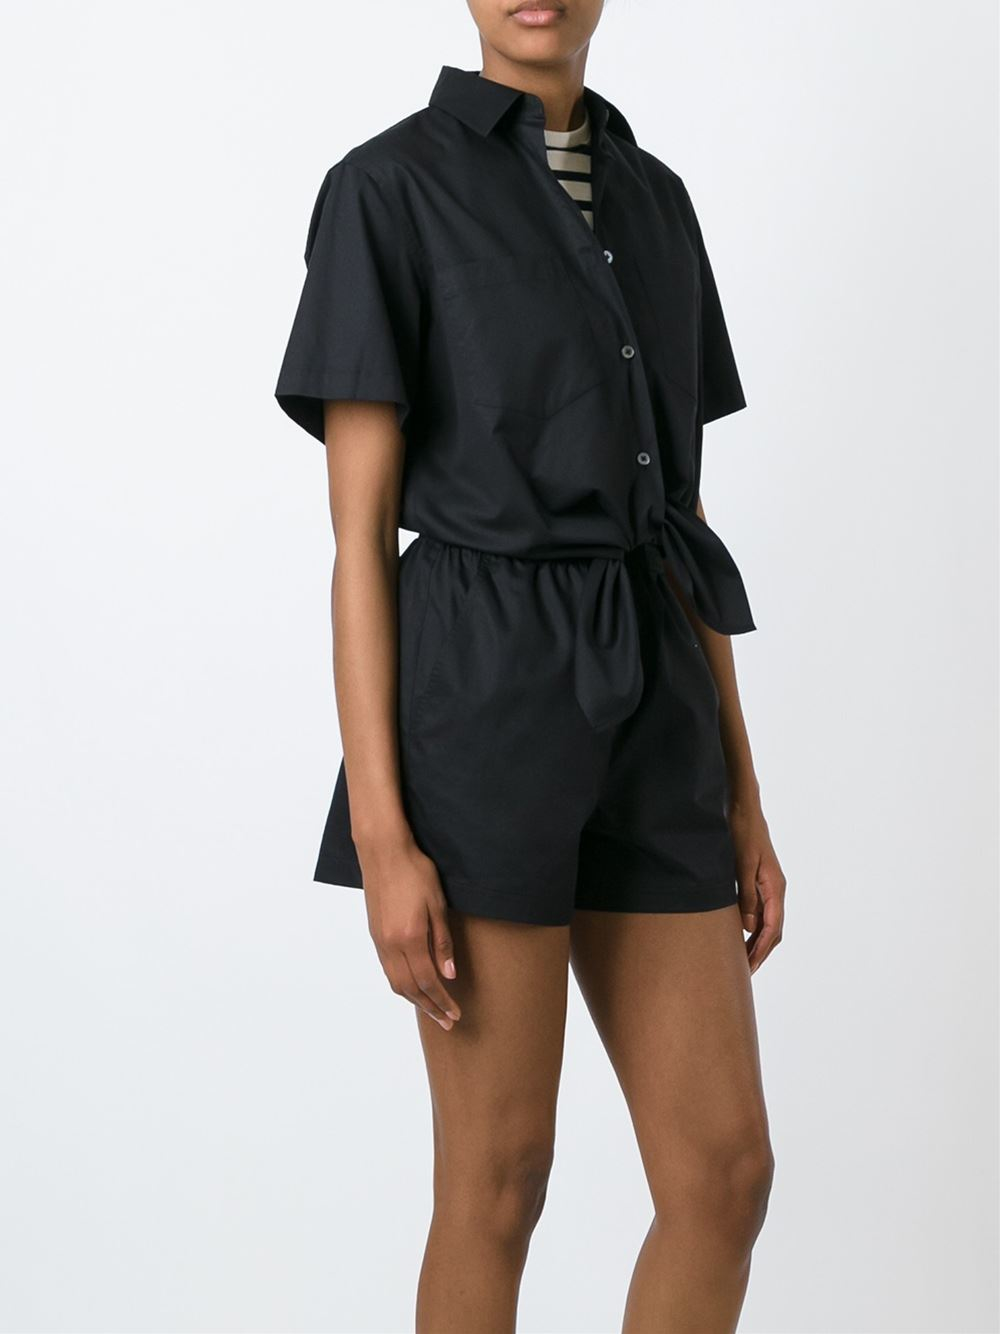 Lyst t by alexander wang shirt style playsuit in black for T by alexander wang t shirt